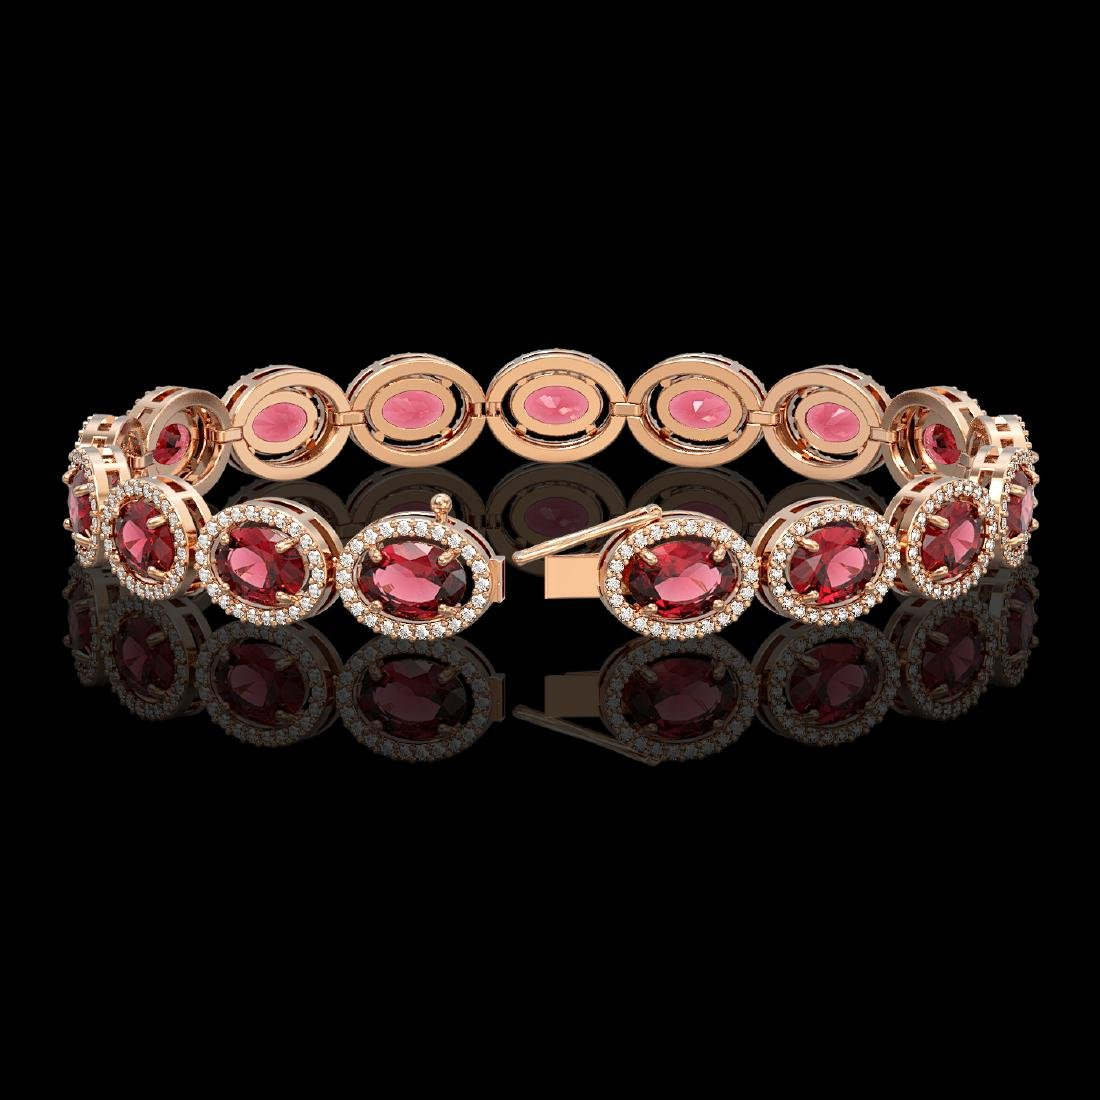 21.71 CTW Tourmaline & Diamond Halo Bracelet 10K Rose - 2